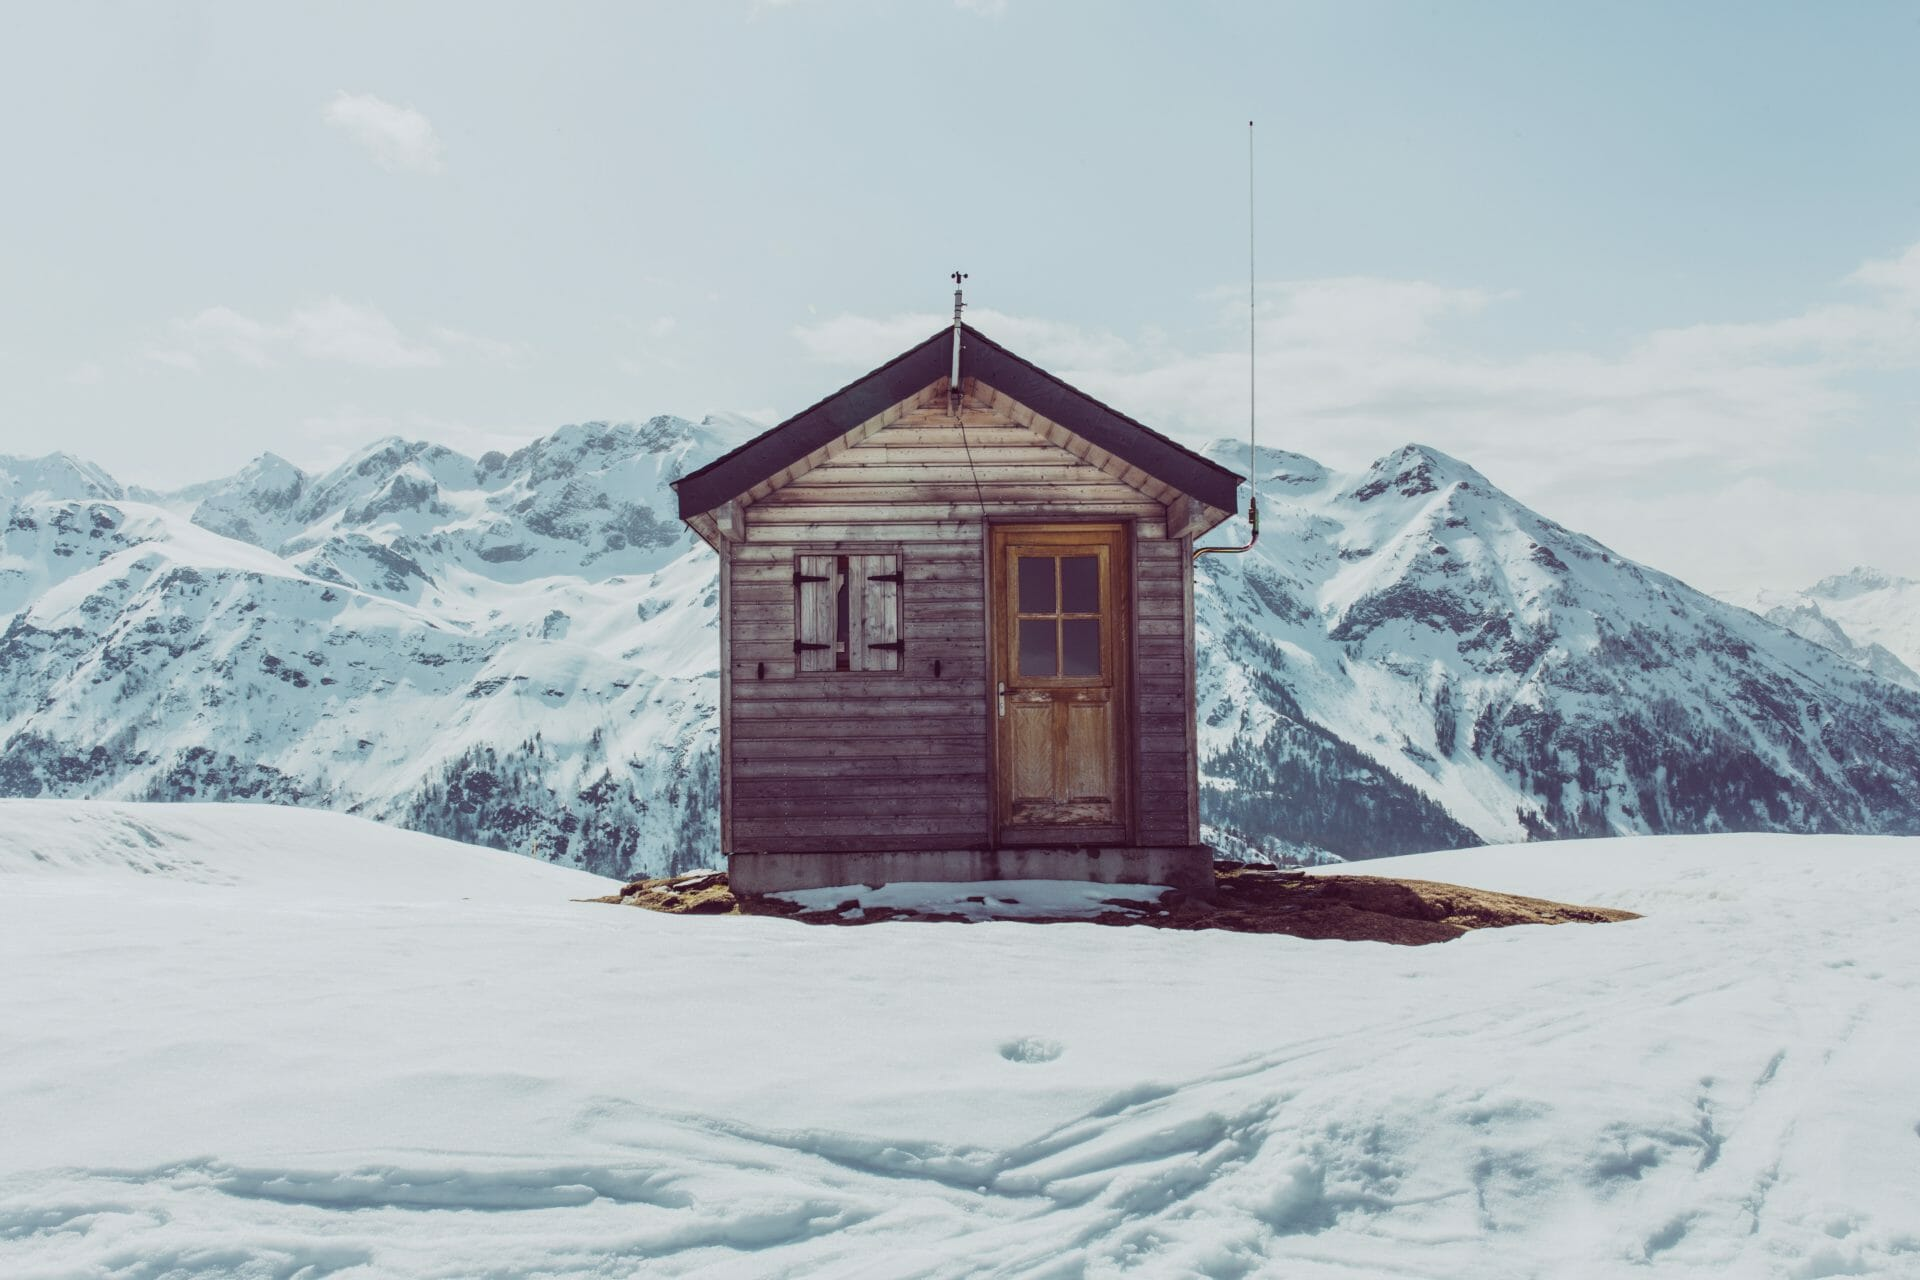 Picture of cabin in snow for Real Estate News for Investors Podcast Episode #742